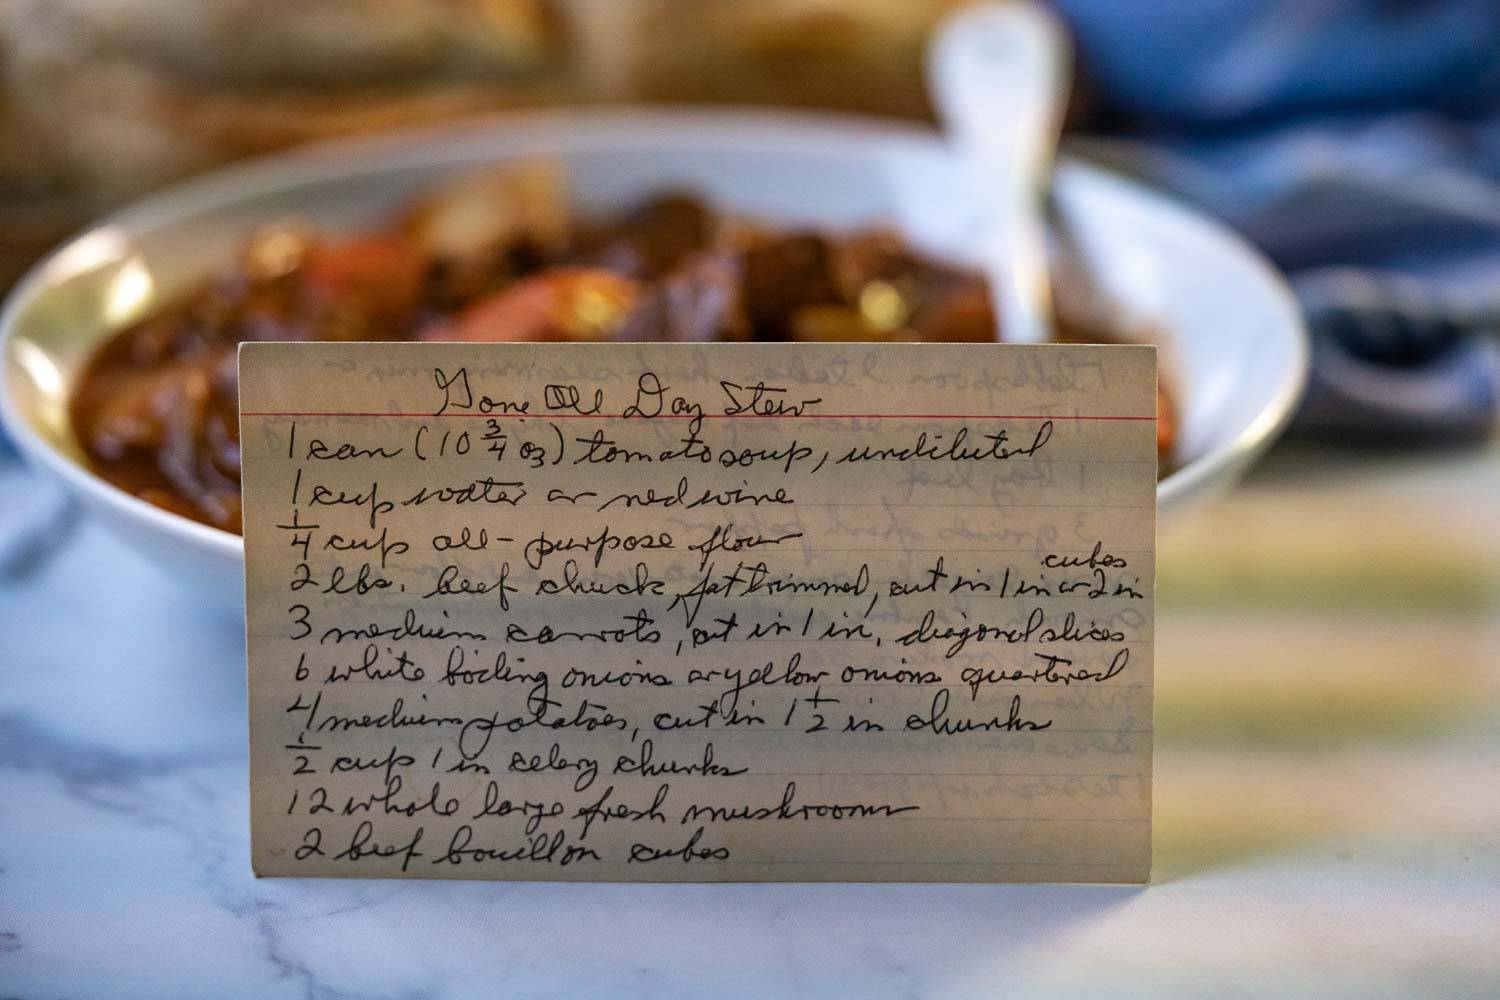 A picture of Papa's recipe card of Gone All Day Stew written in his hand writing.